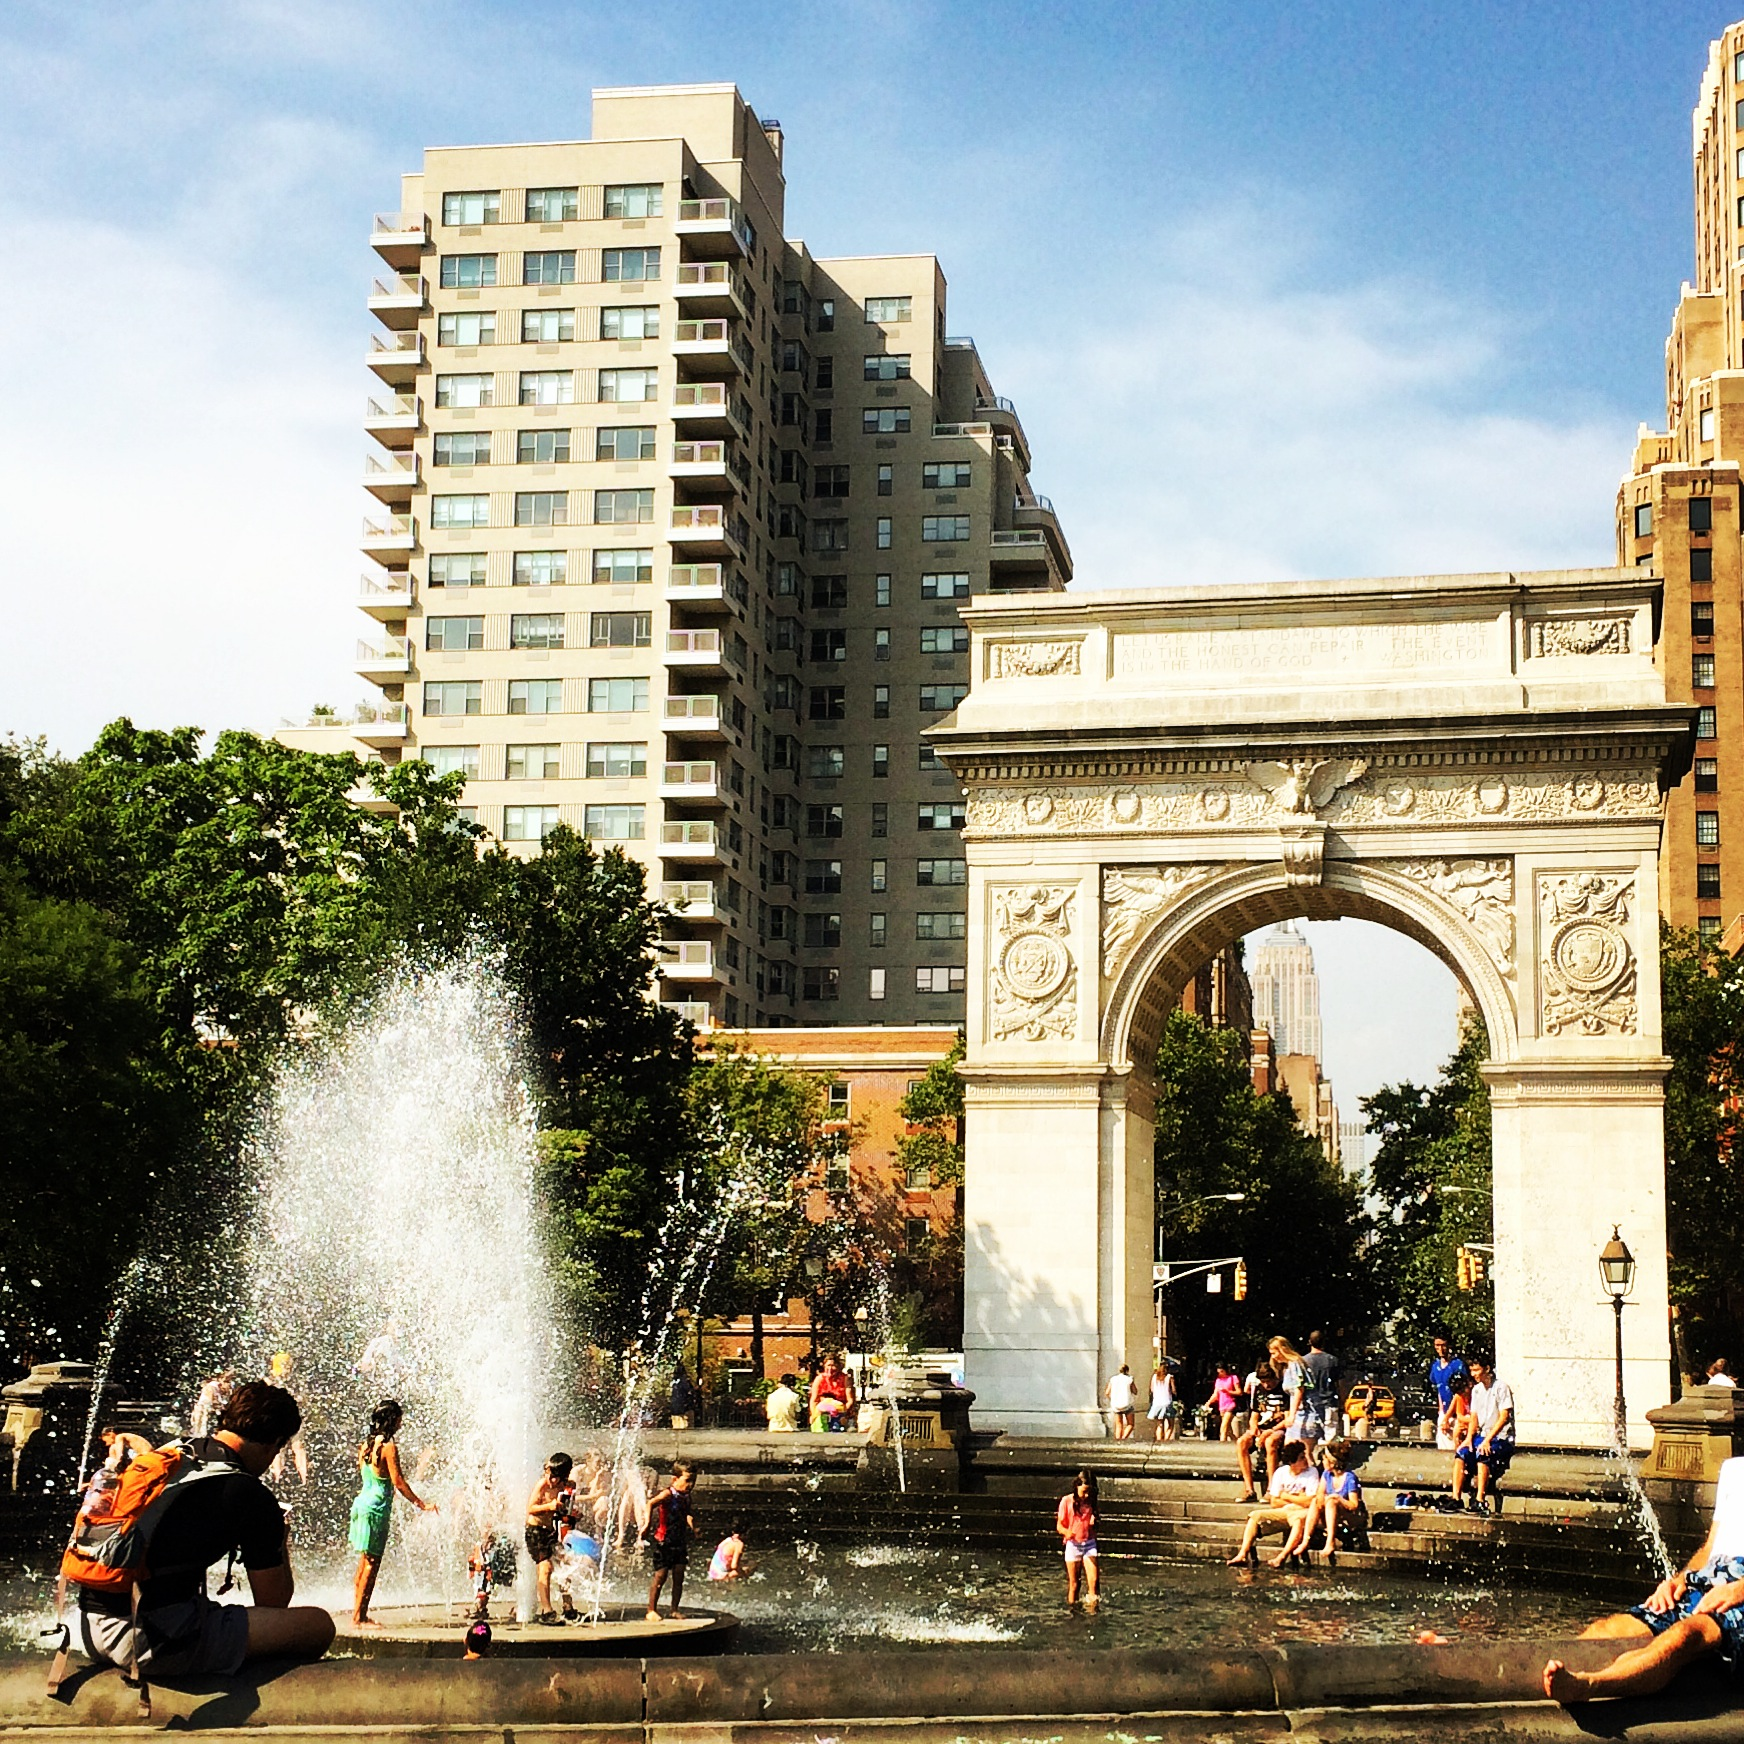 Washington Square Park on a hot Wednesday afternoon